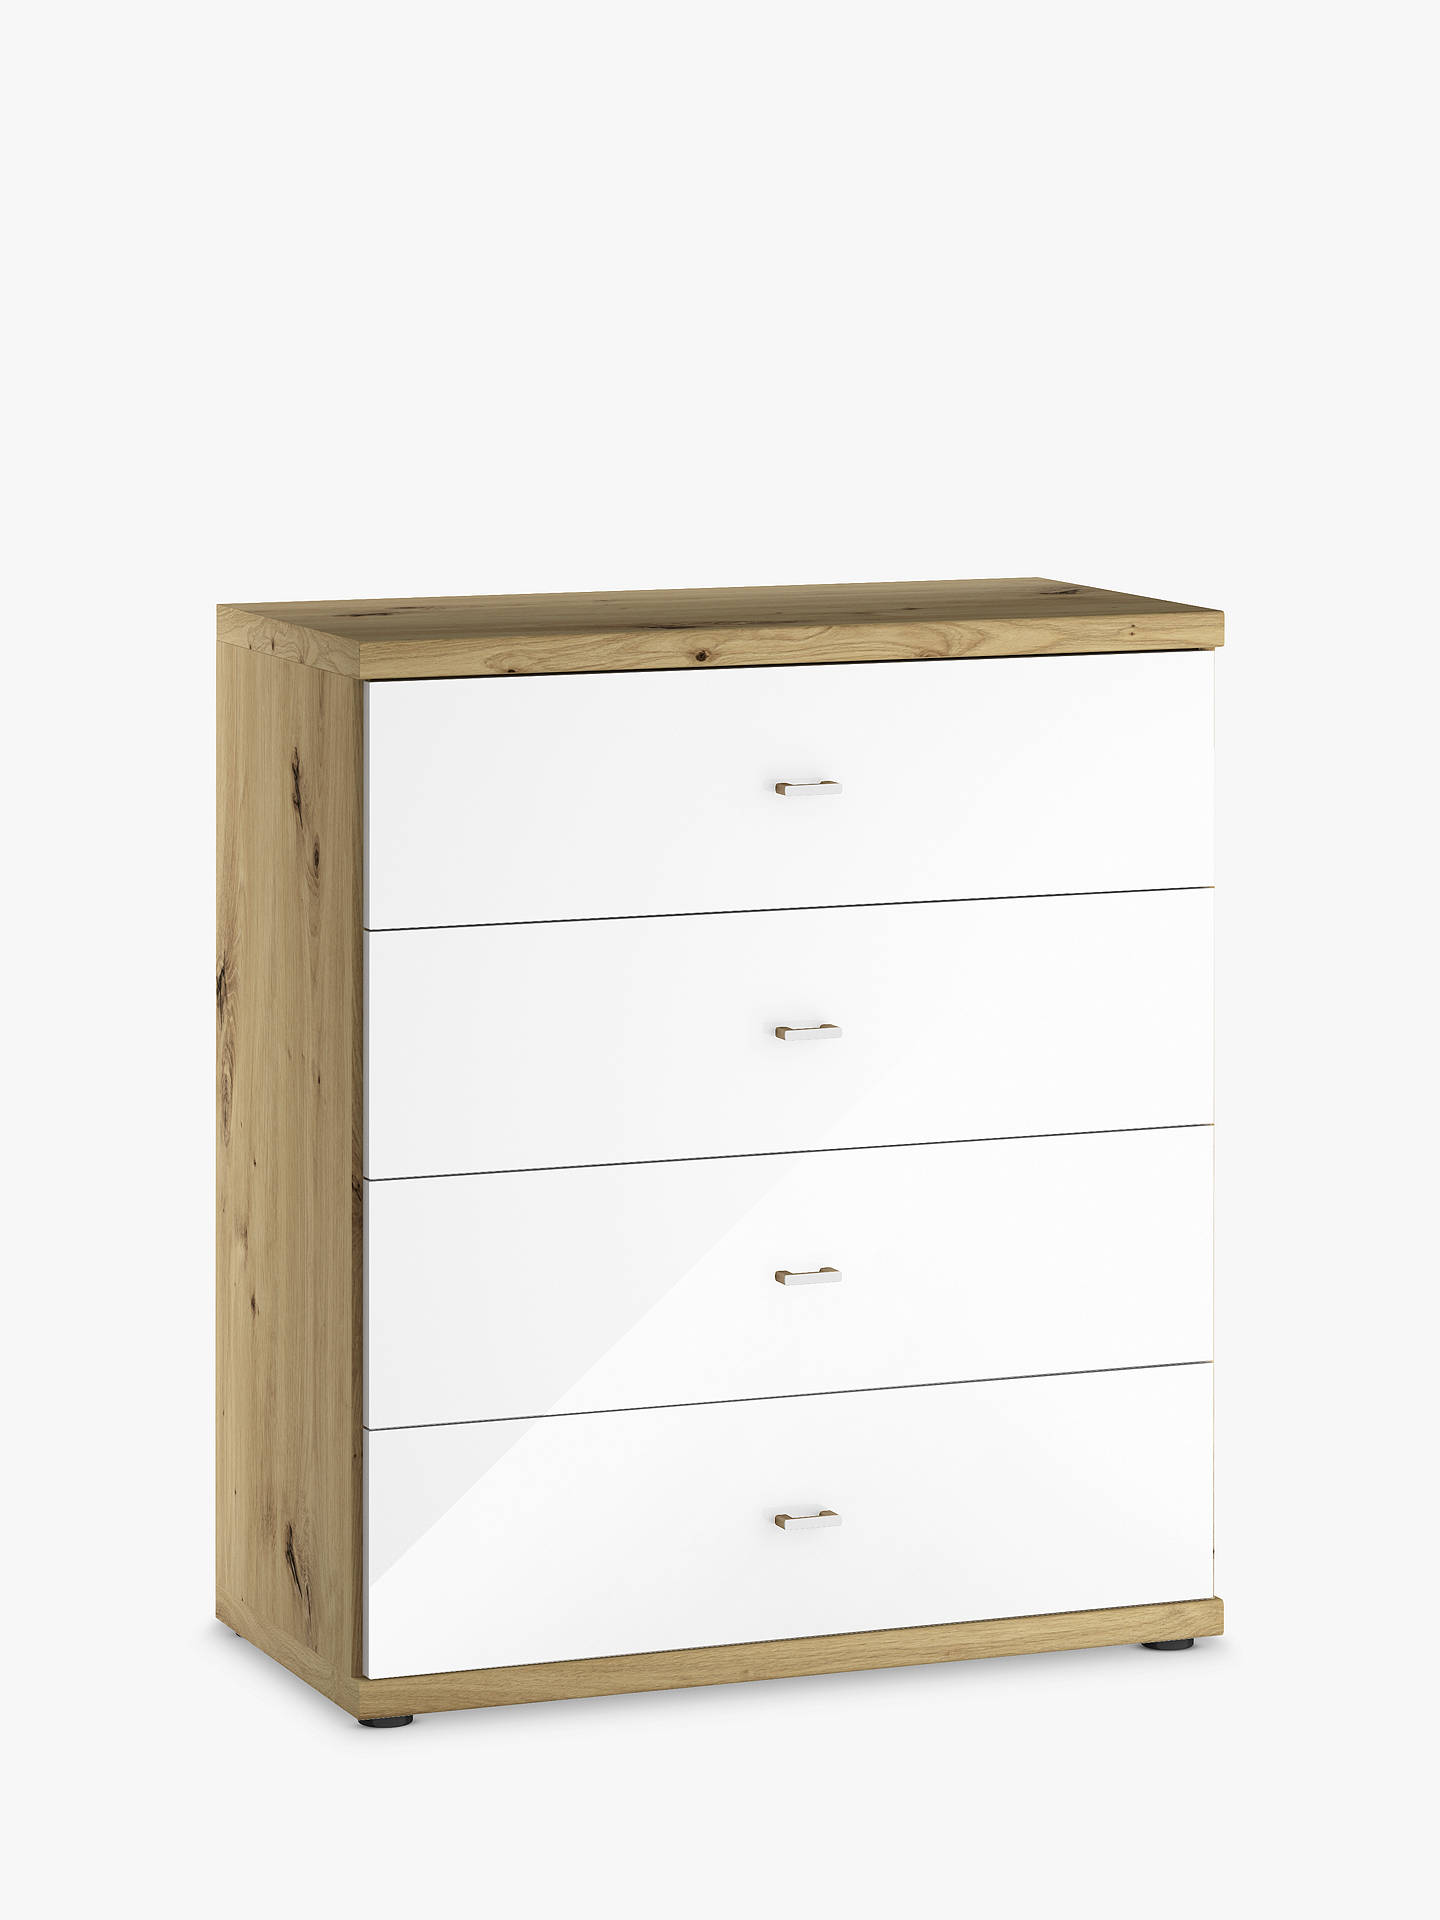 Buy John Lewis & Partners Elstra Wide 4 Drawer Glass Front Chest, White Glass/Bianco Oak Online at johnlewis.com